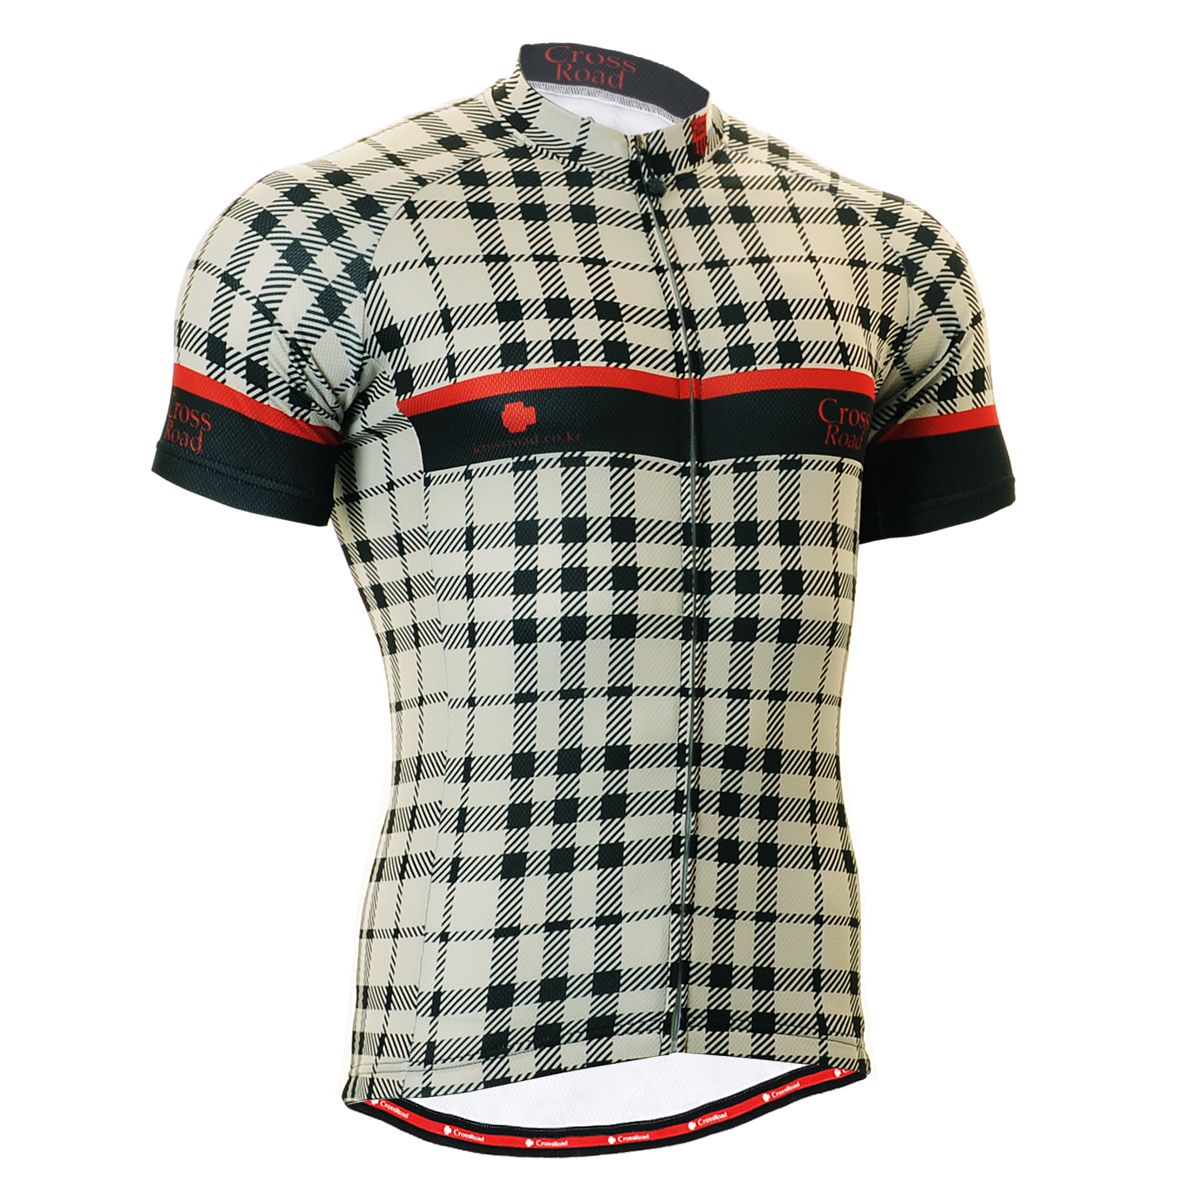 Fixgear Cycling Jersey Short Sleeve Model No Is Cs 102 Comfortable Cycling Jersey Camisas Ciclismo Ropa